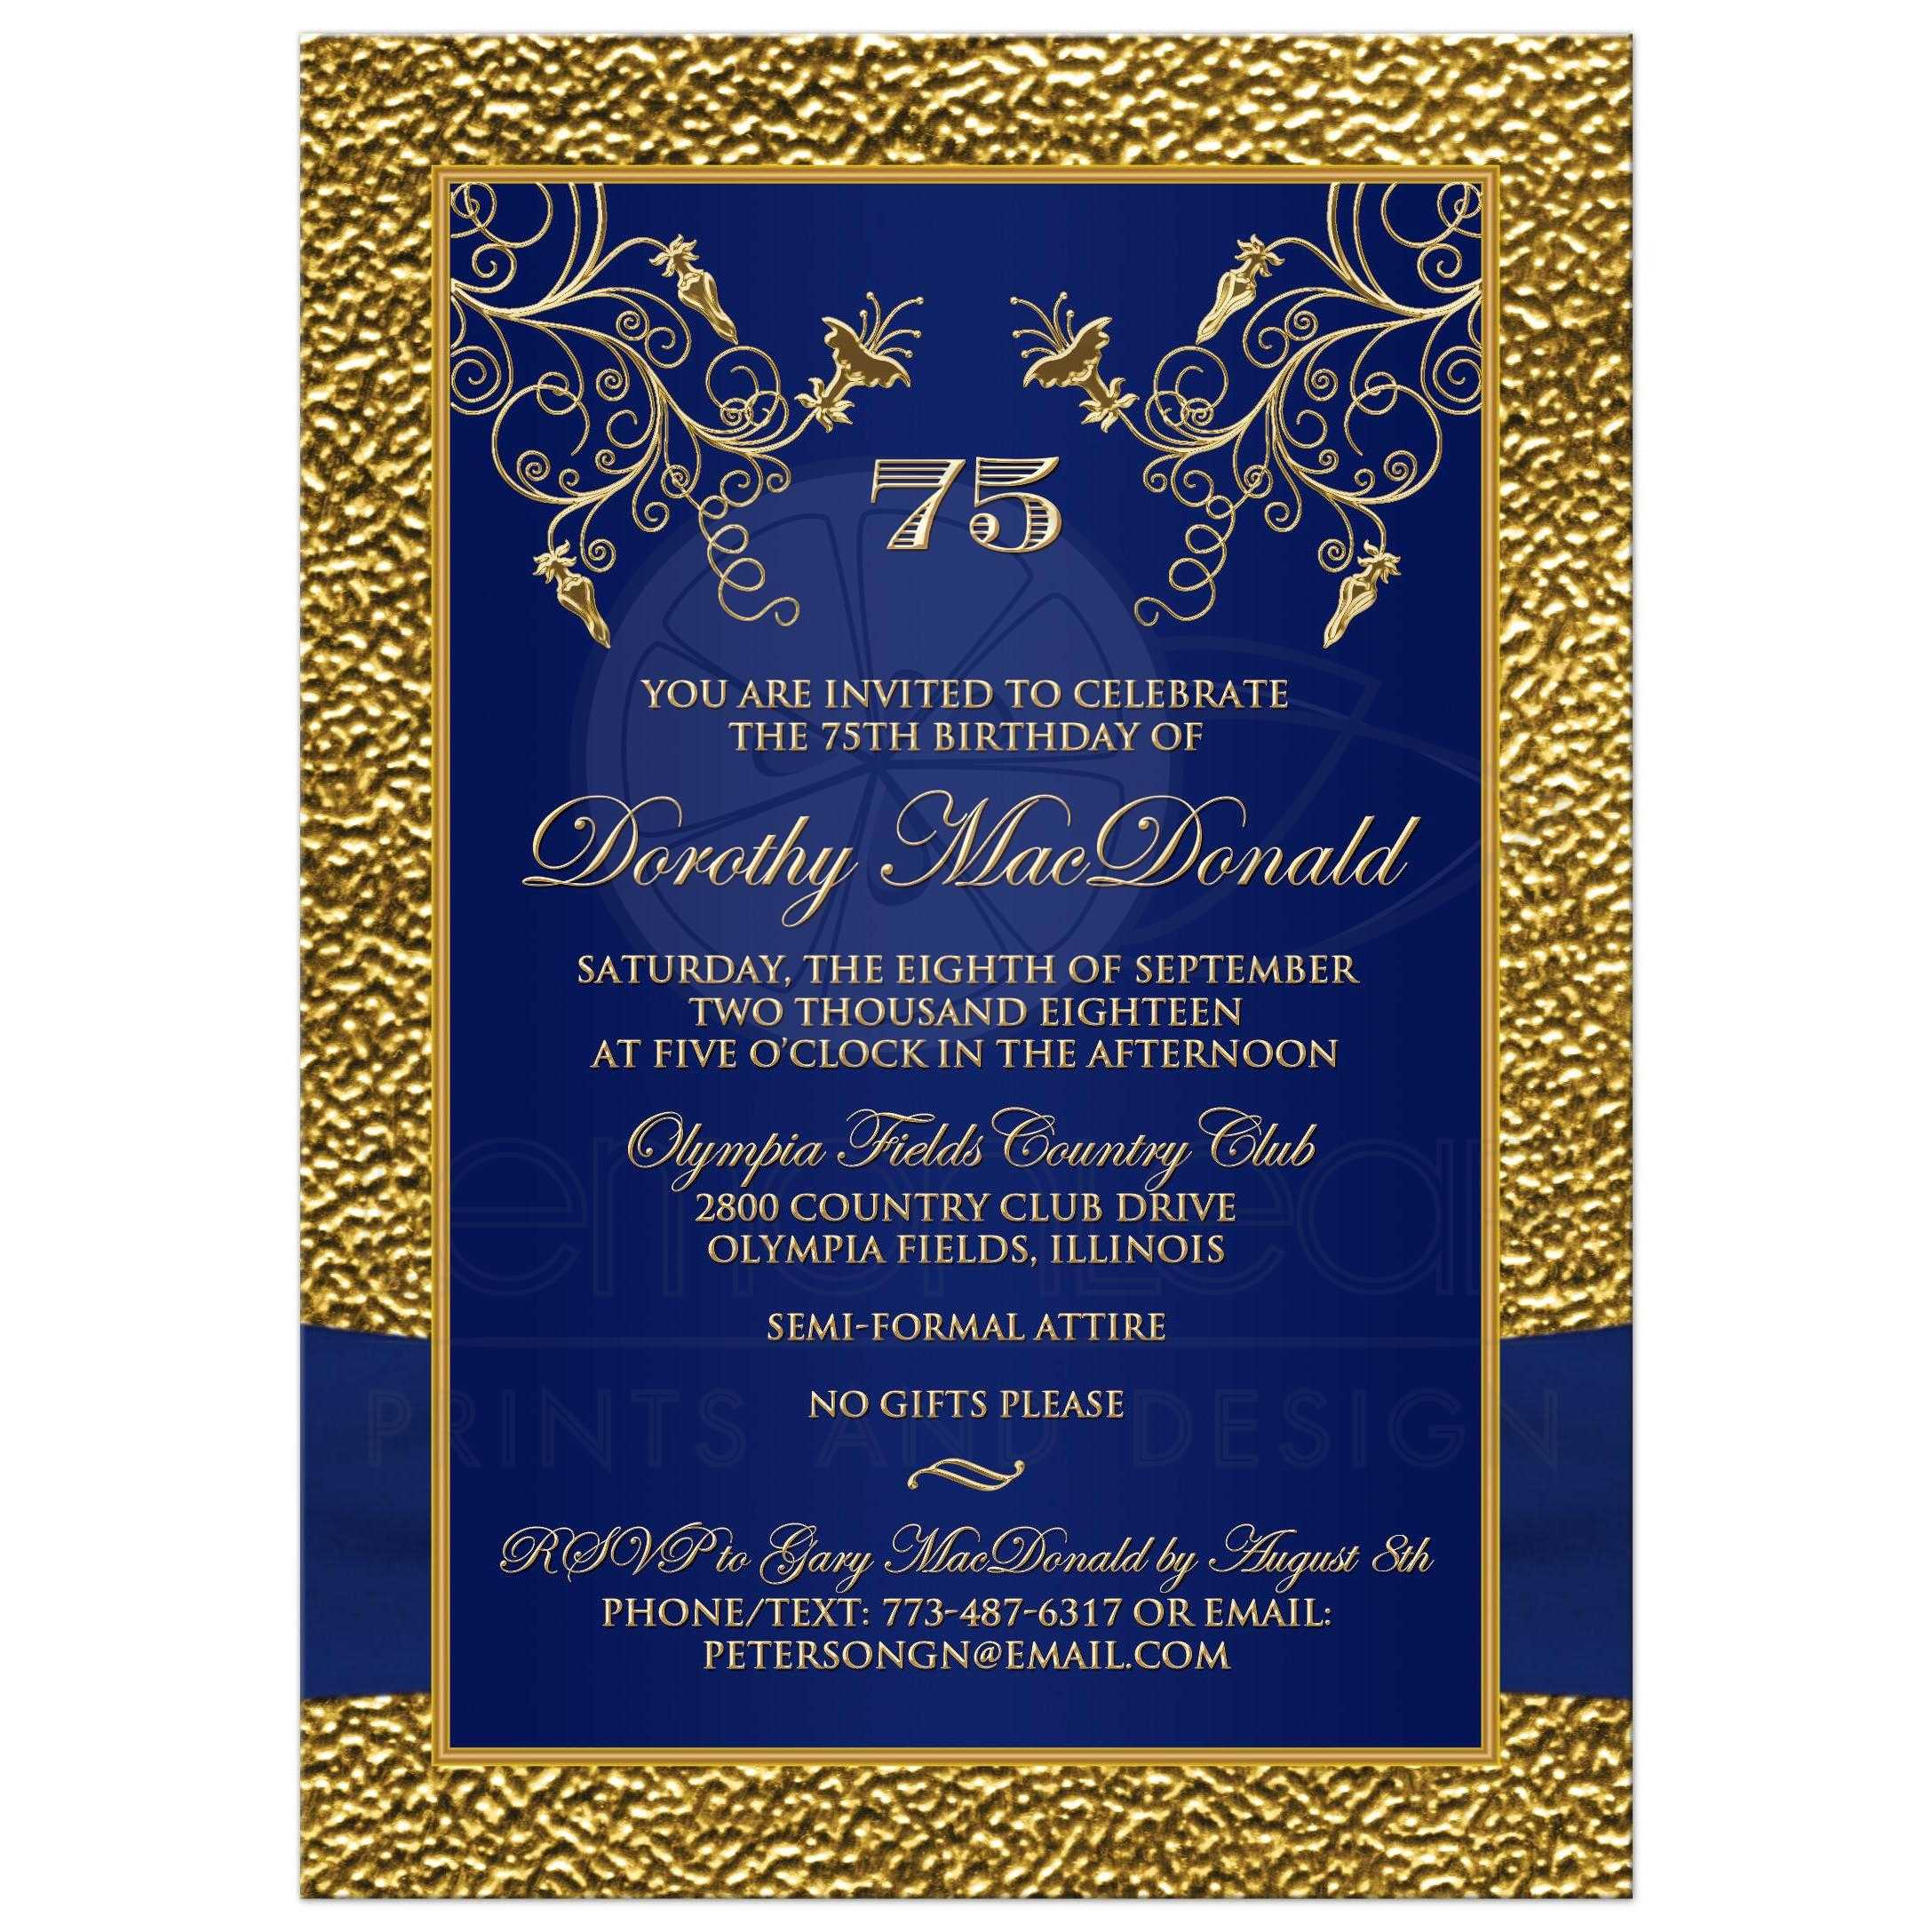 printed ribbon and jewels photo template gold  navy blue